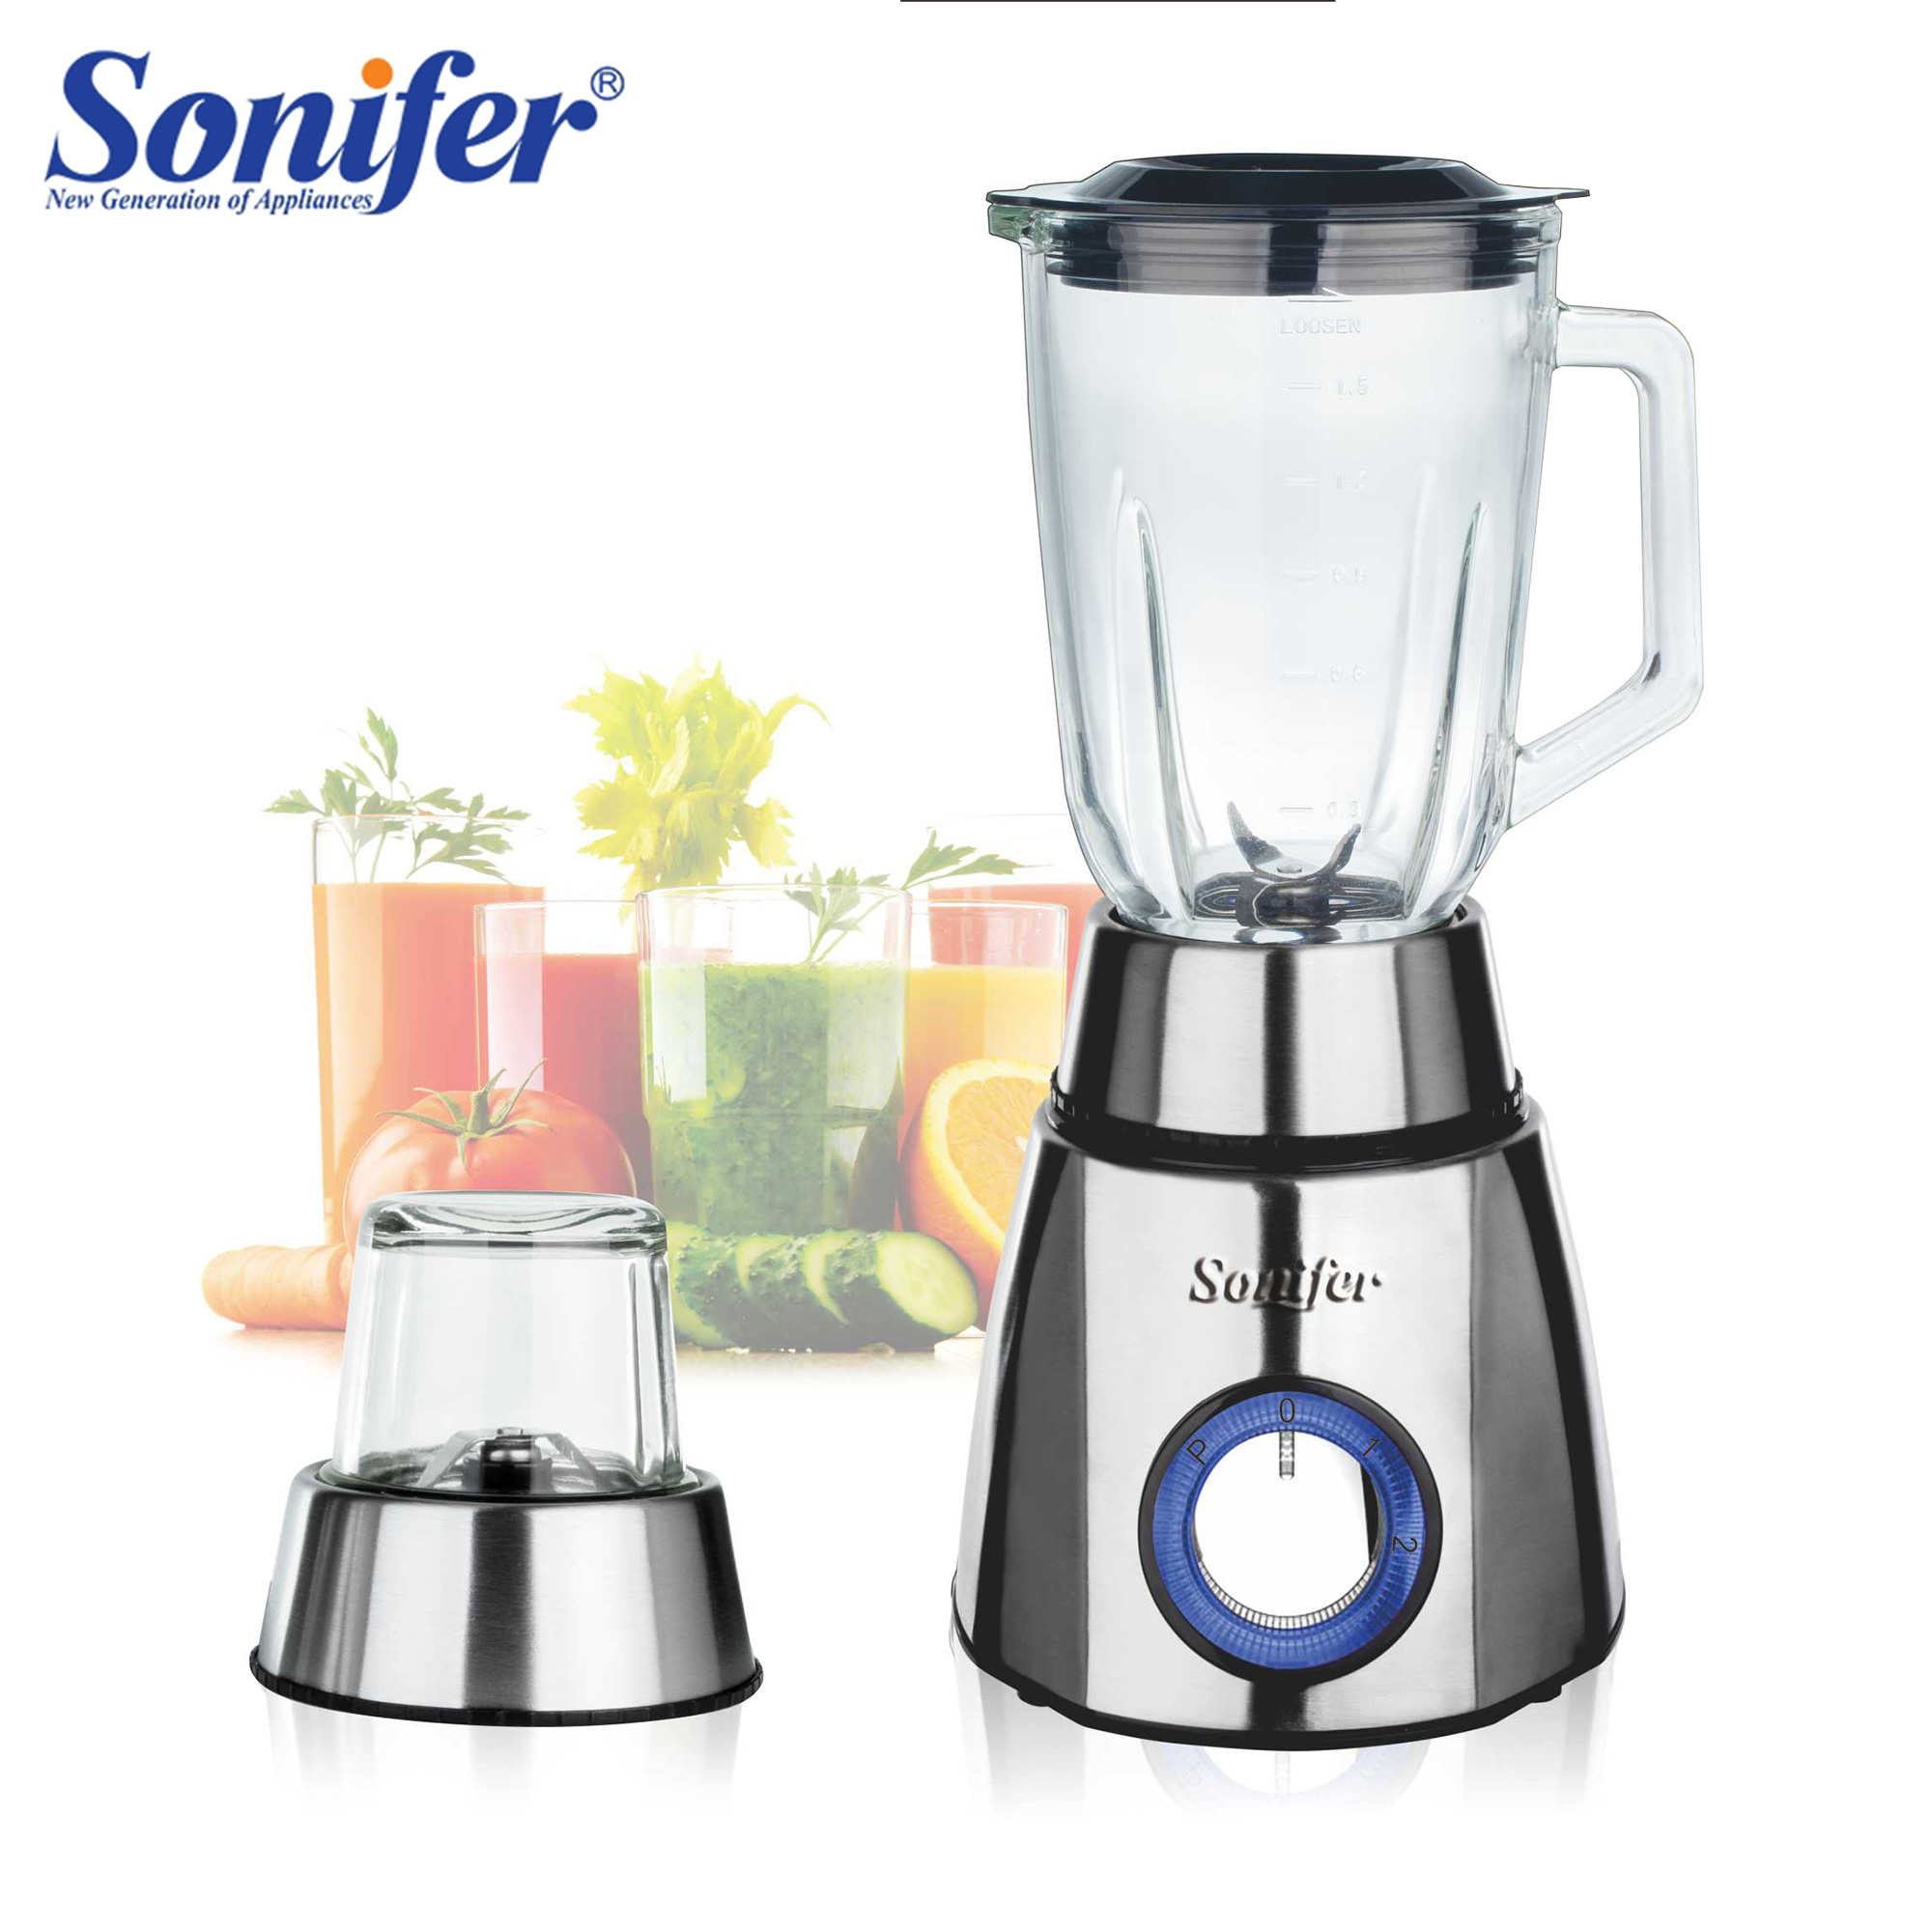 2 Speed Electric Blender Stainless Steel Housing 2in1Grinder Household Food Mixer Juicer Fruit Food Processor Crush Ice Sonifer